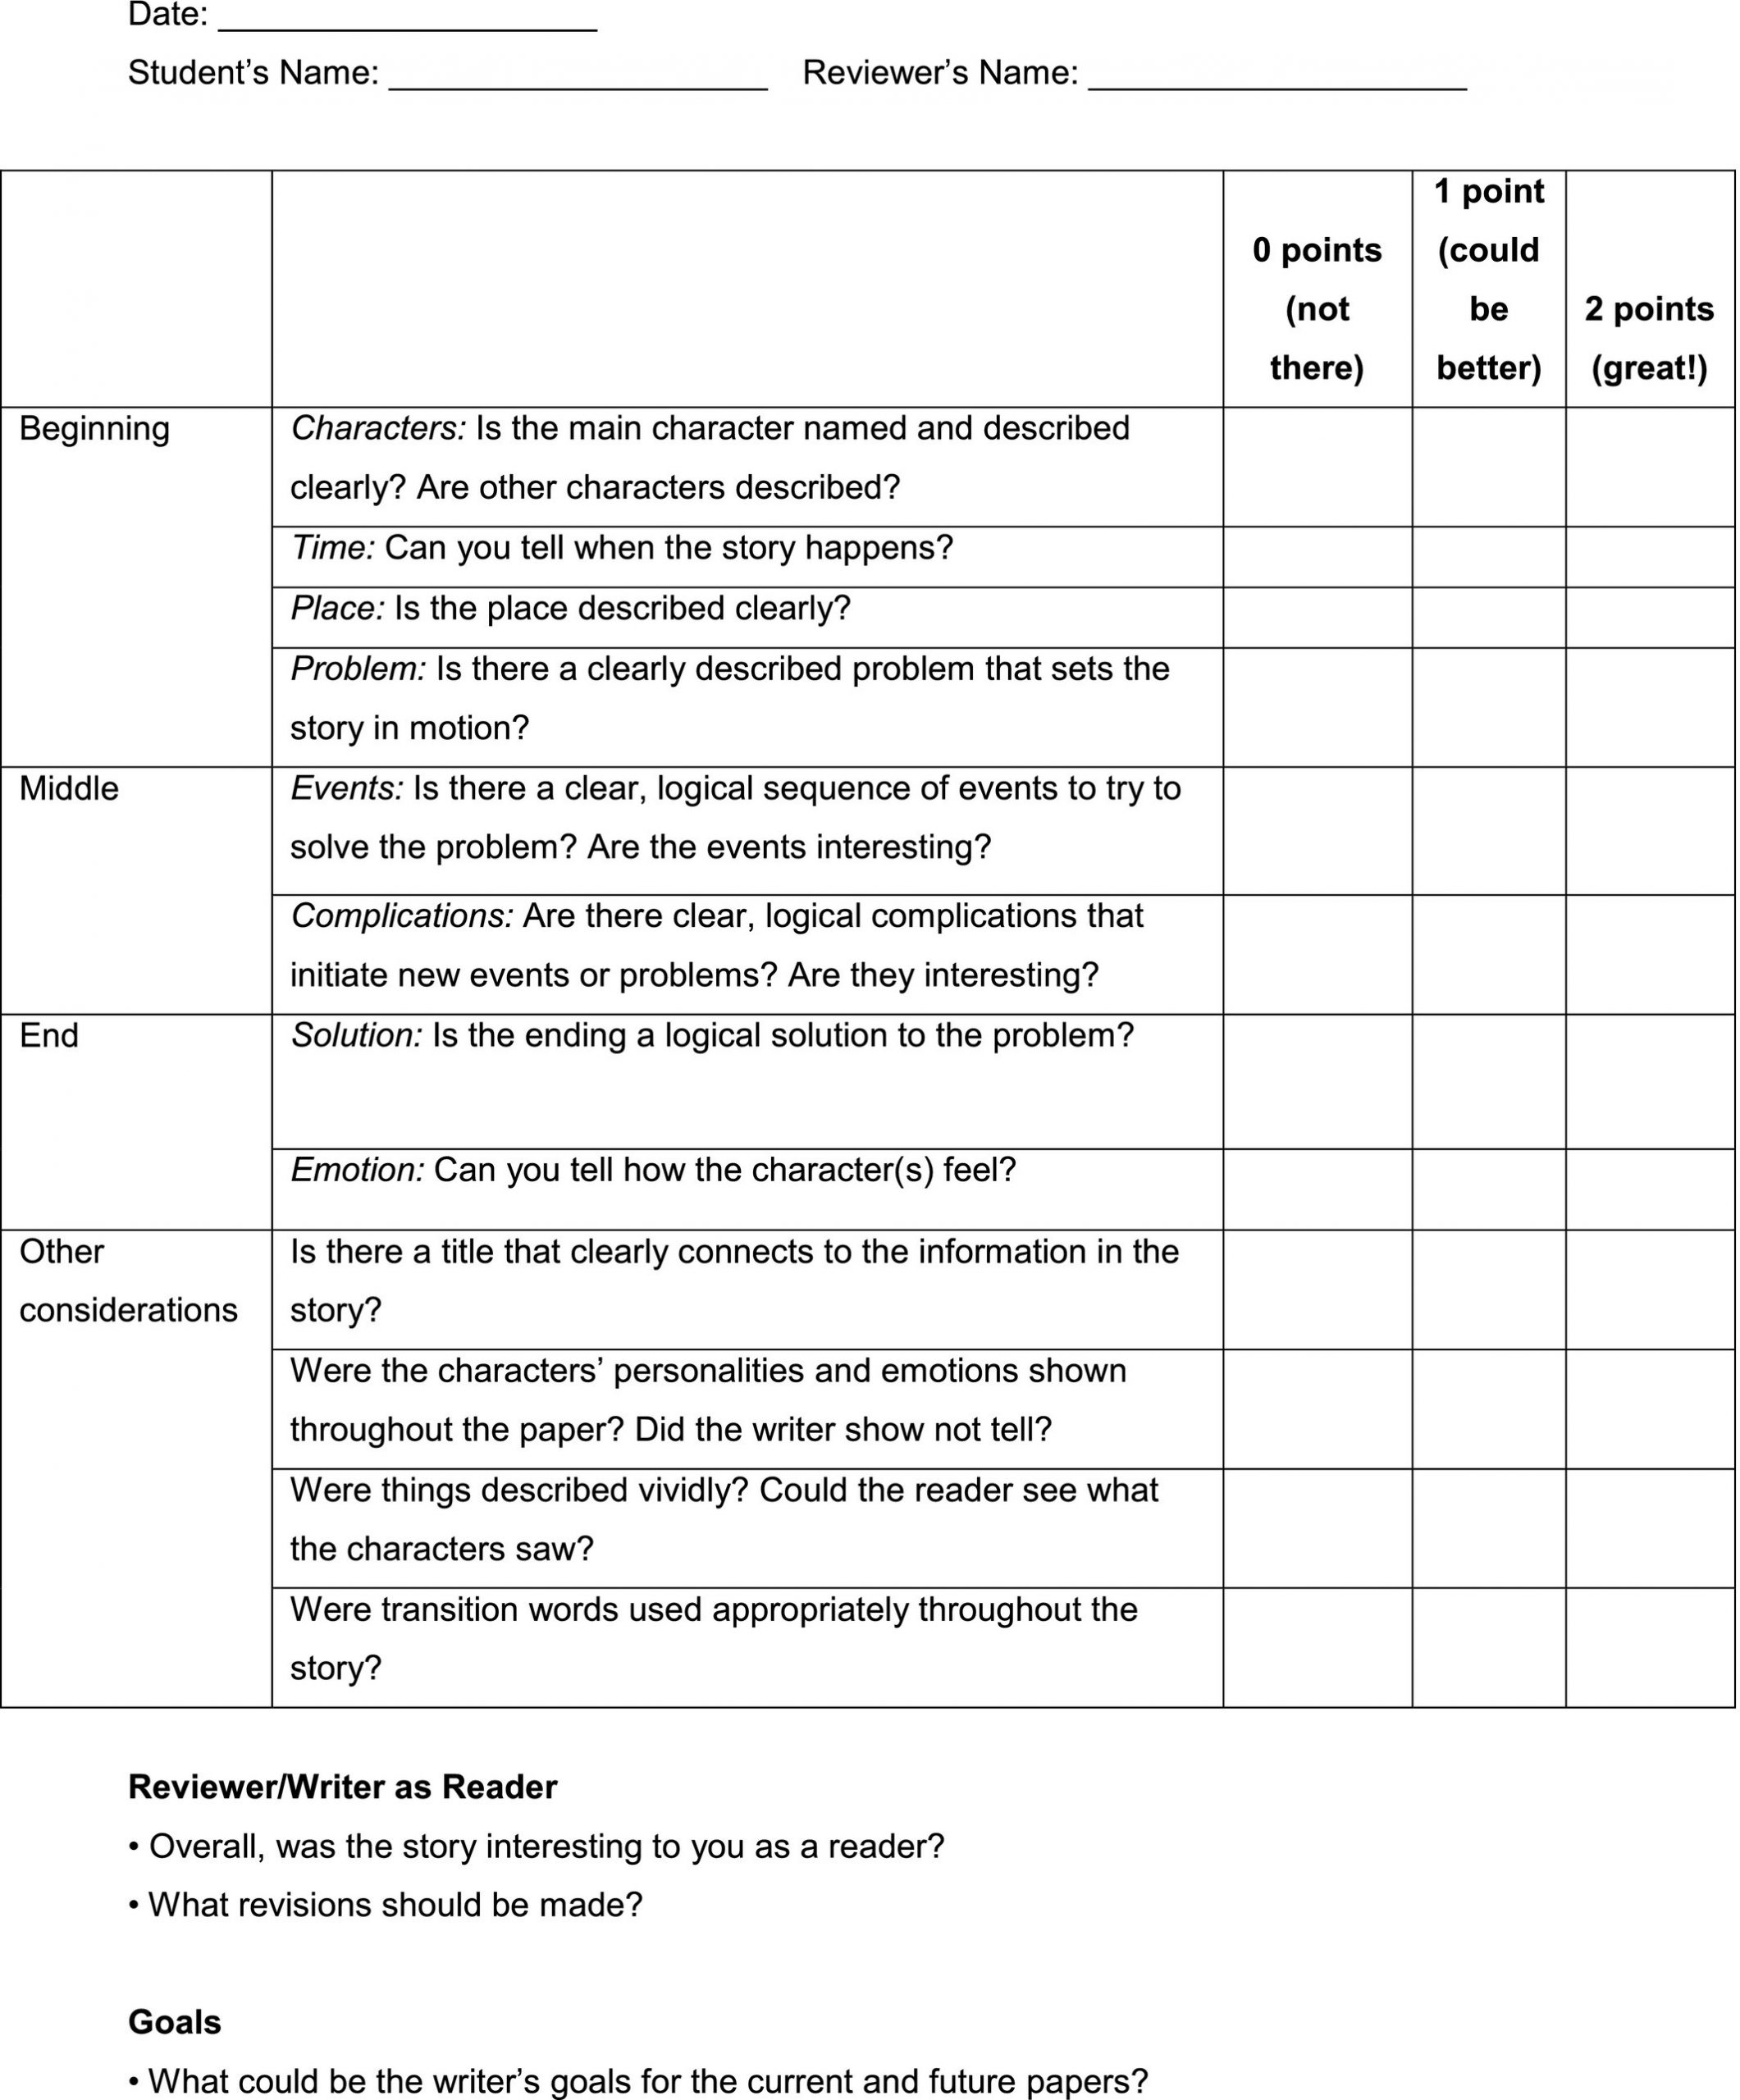 Peer Review Worksheet High School Giving Feedback Preparing Students for Peer Review and Self